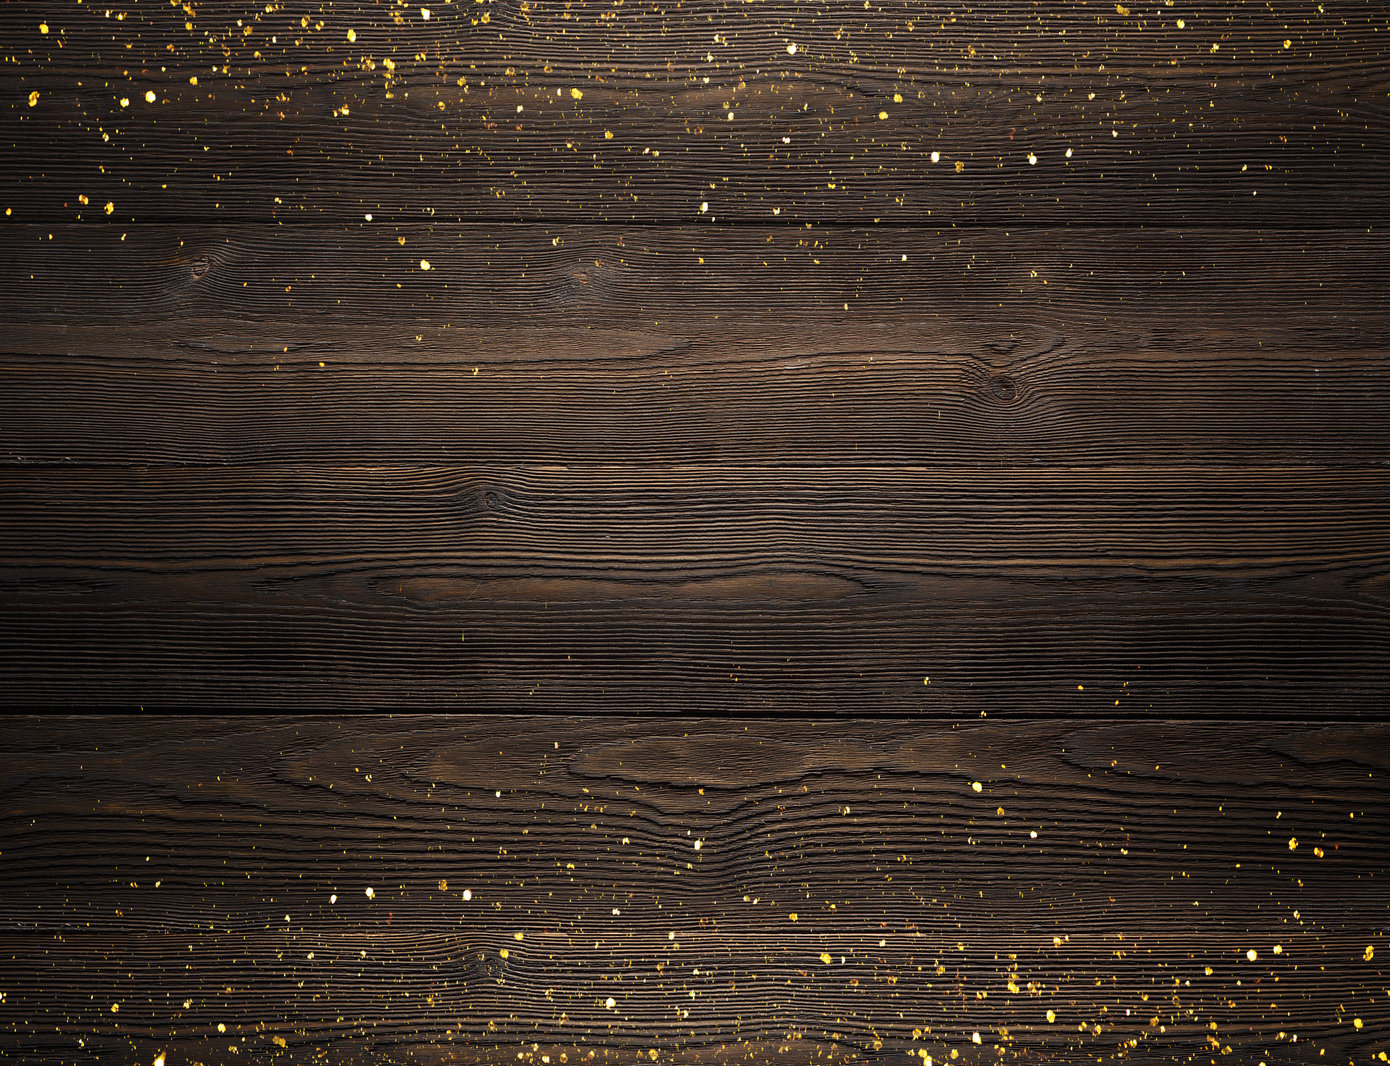 Gold glitter on top of a dark brown wood background